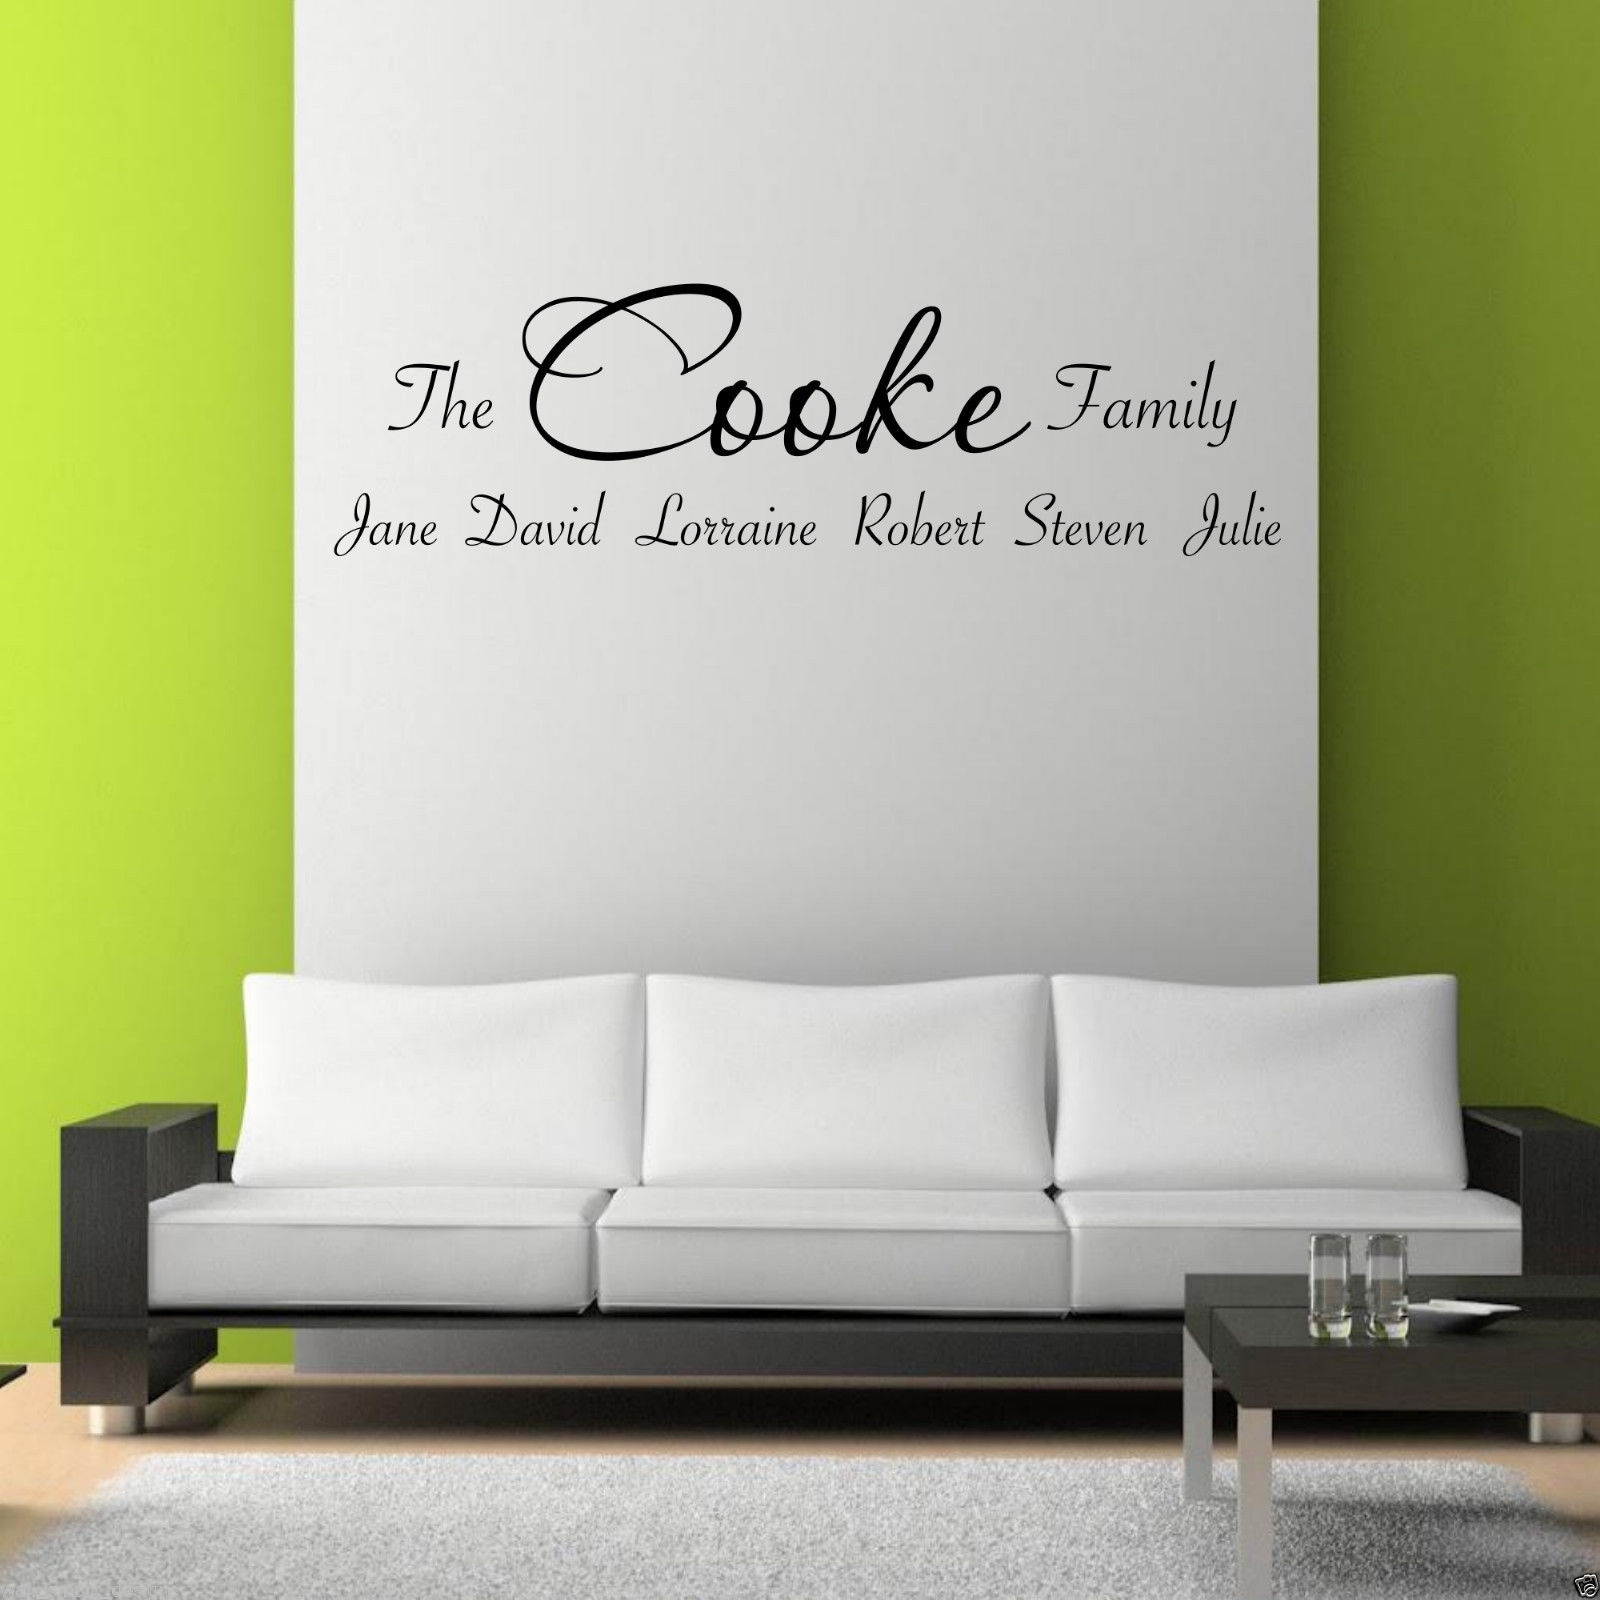 Personalised Family Wall Art Sticker Lounge Quote Decal Transfer Inside Family Wall Art (View 14 of 20)